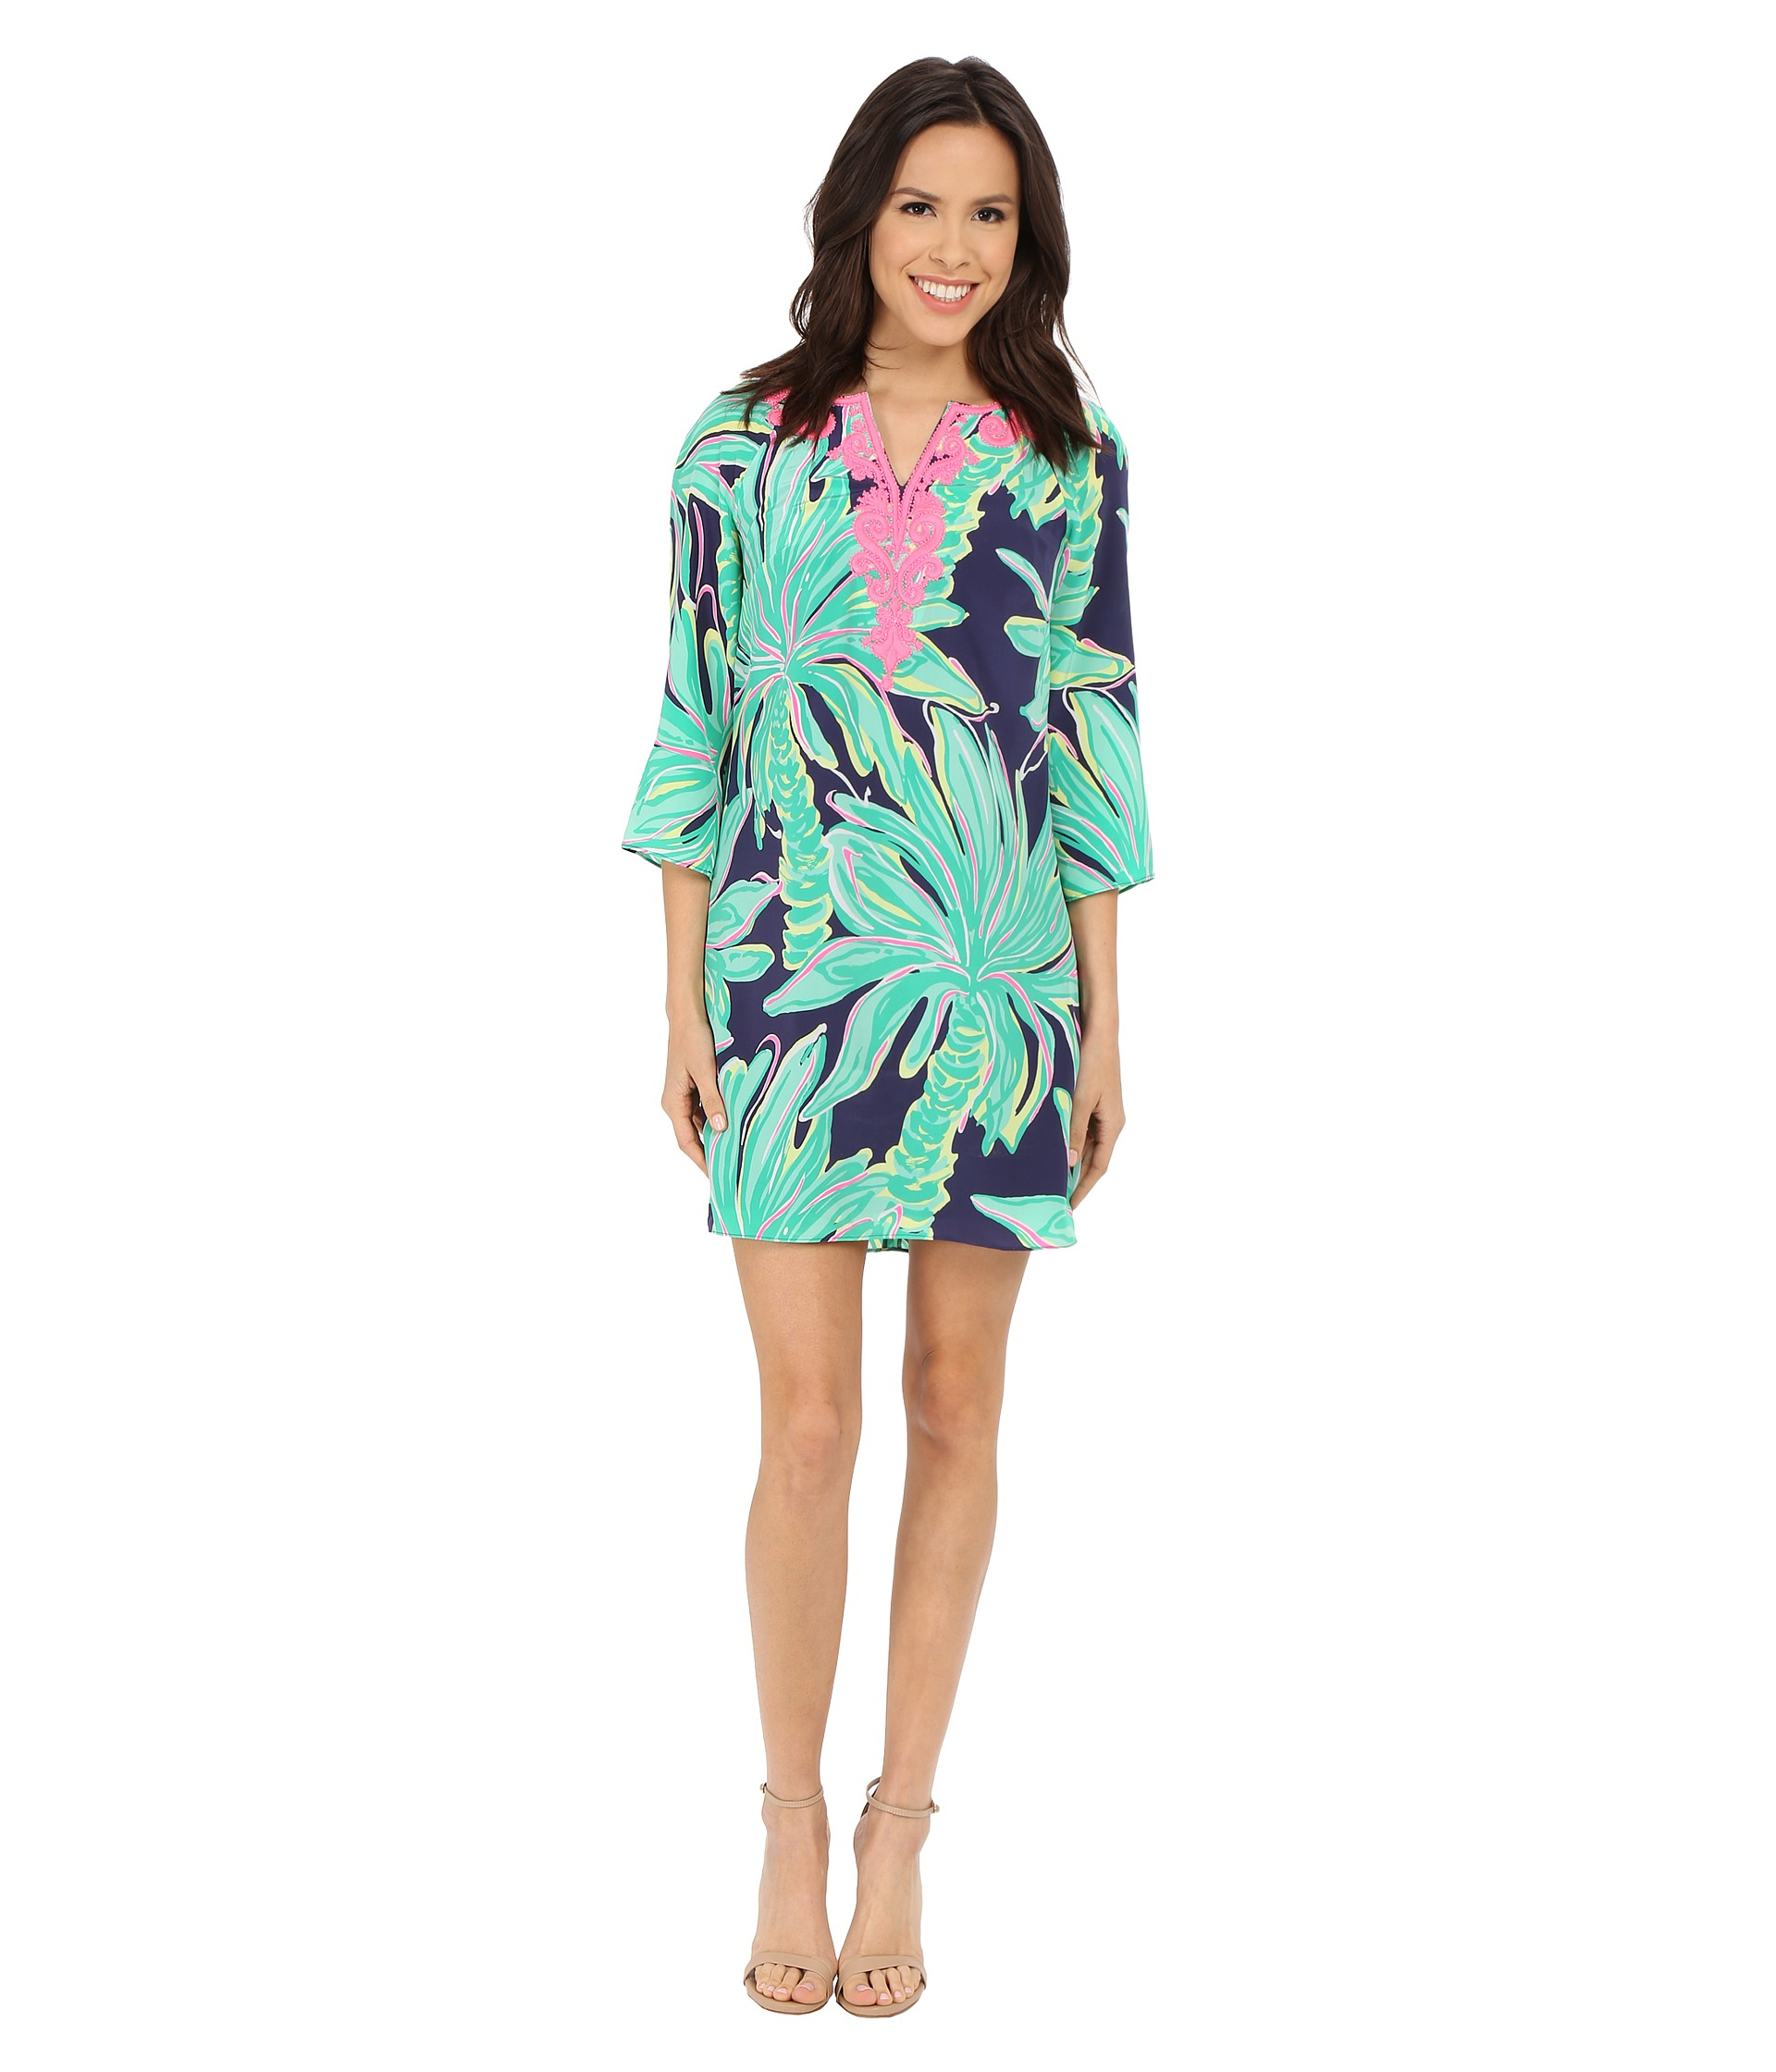 Lyst - Lilly Pulitzer Rylee Shift Dress